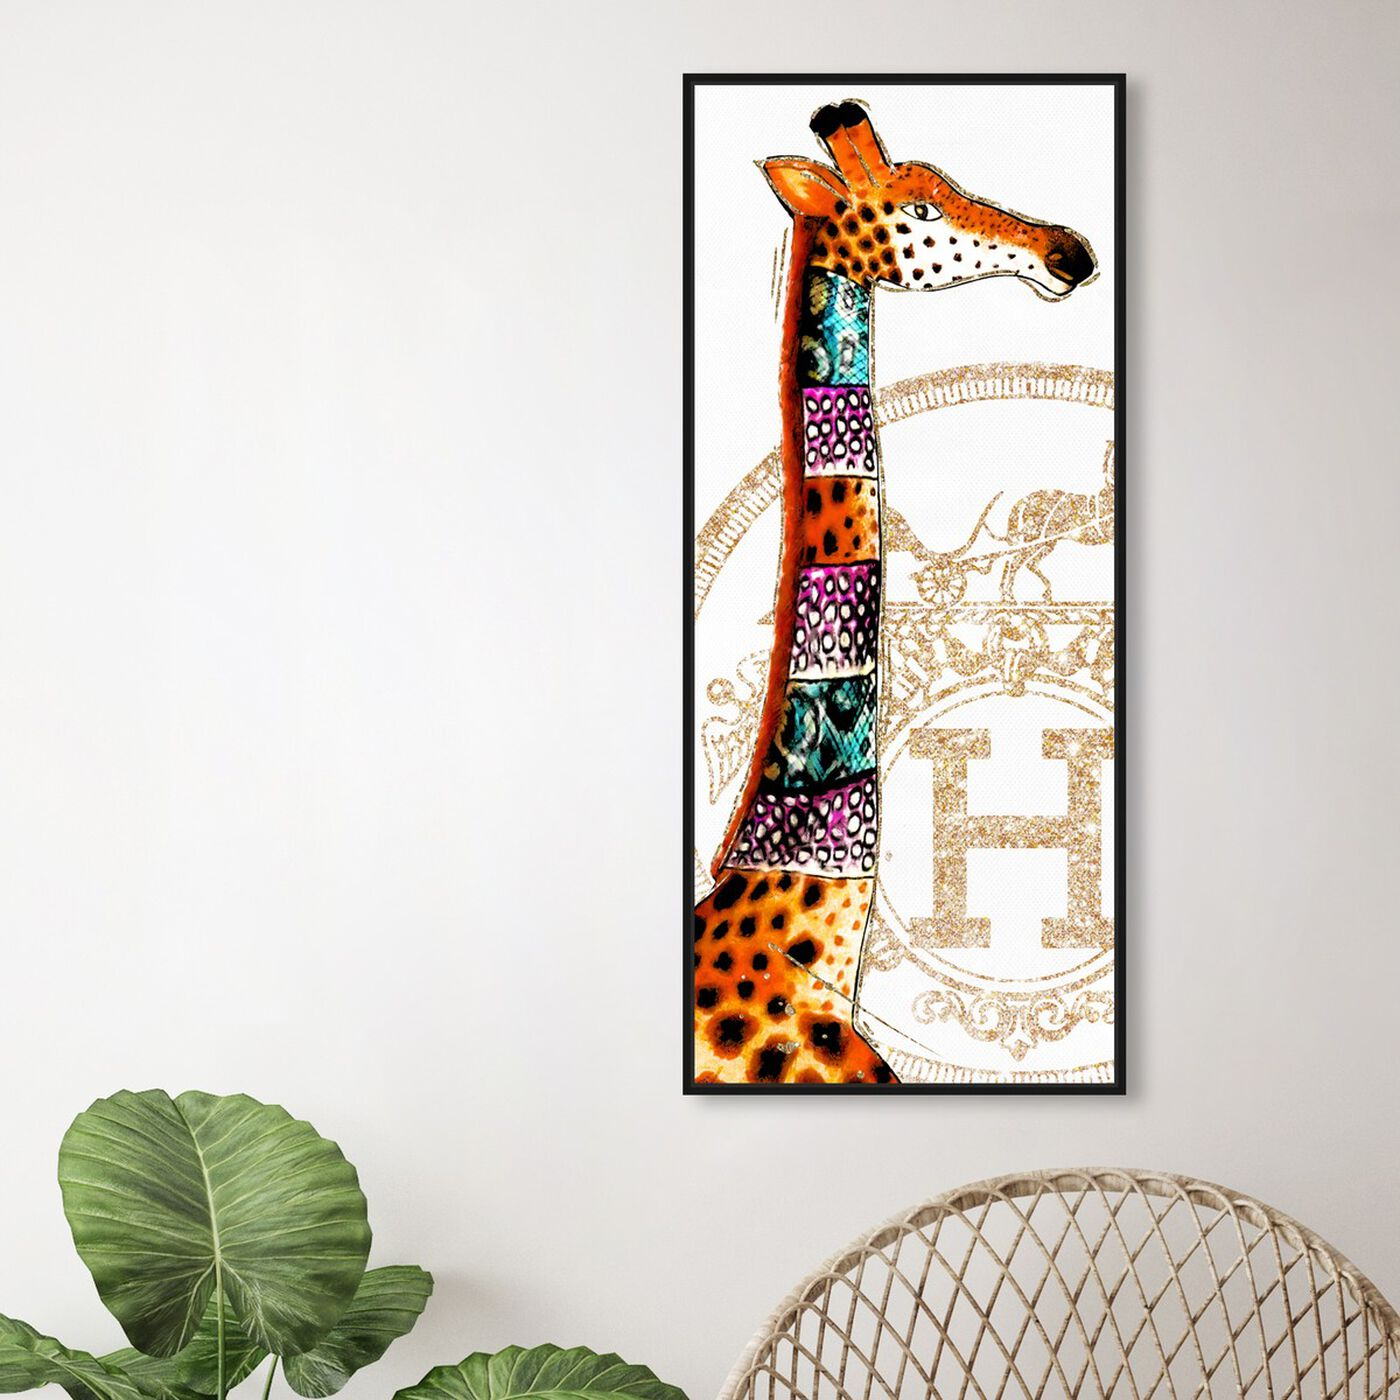 Hanging view of Giraffe Stand featuring fashion and glam and lifestyle art.